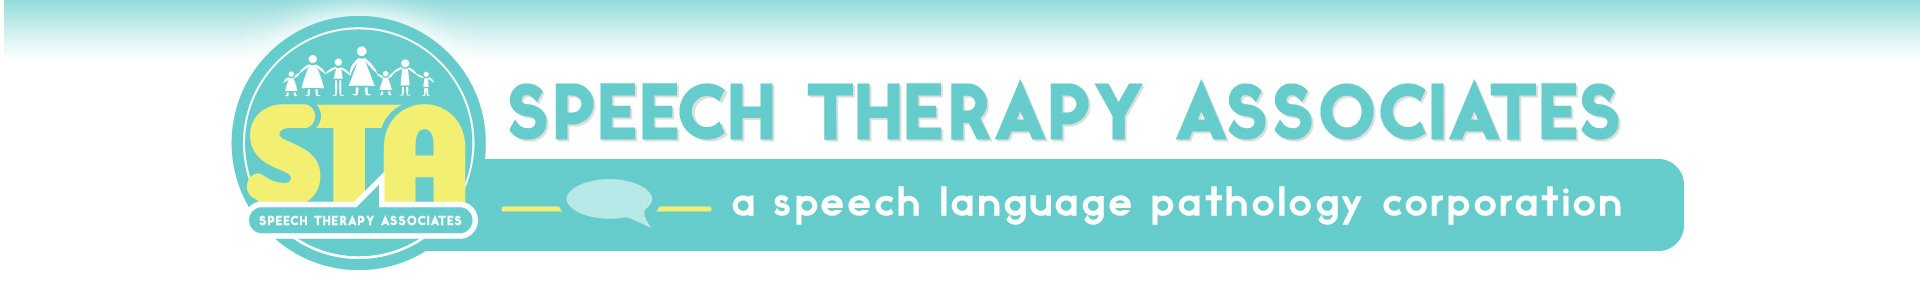 Speech Therapy Associates